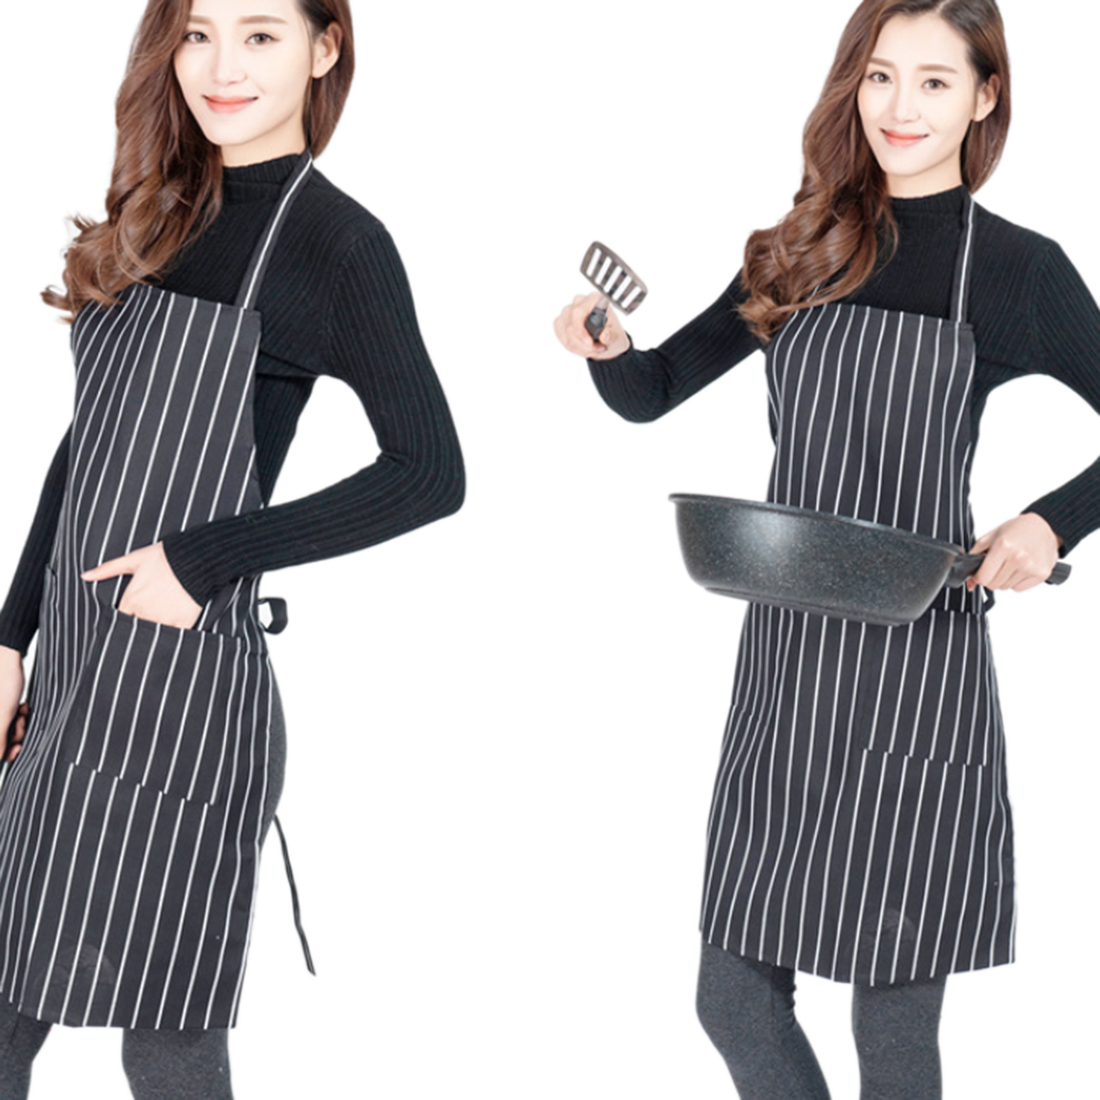 White aprons for sale - Hot Sale Stripes Working Apron Kitchen Restaurant Cooking Baking Apron With Pocket Monther Gift Black White